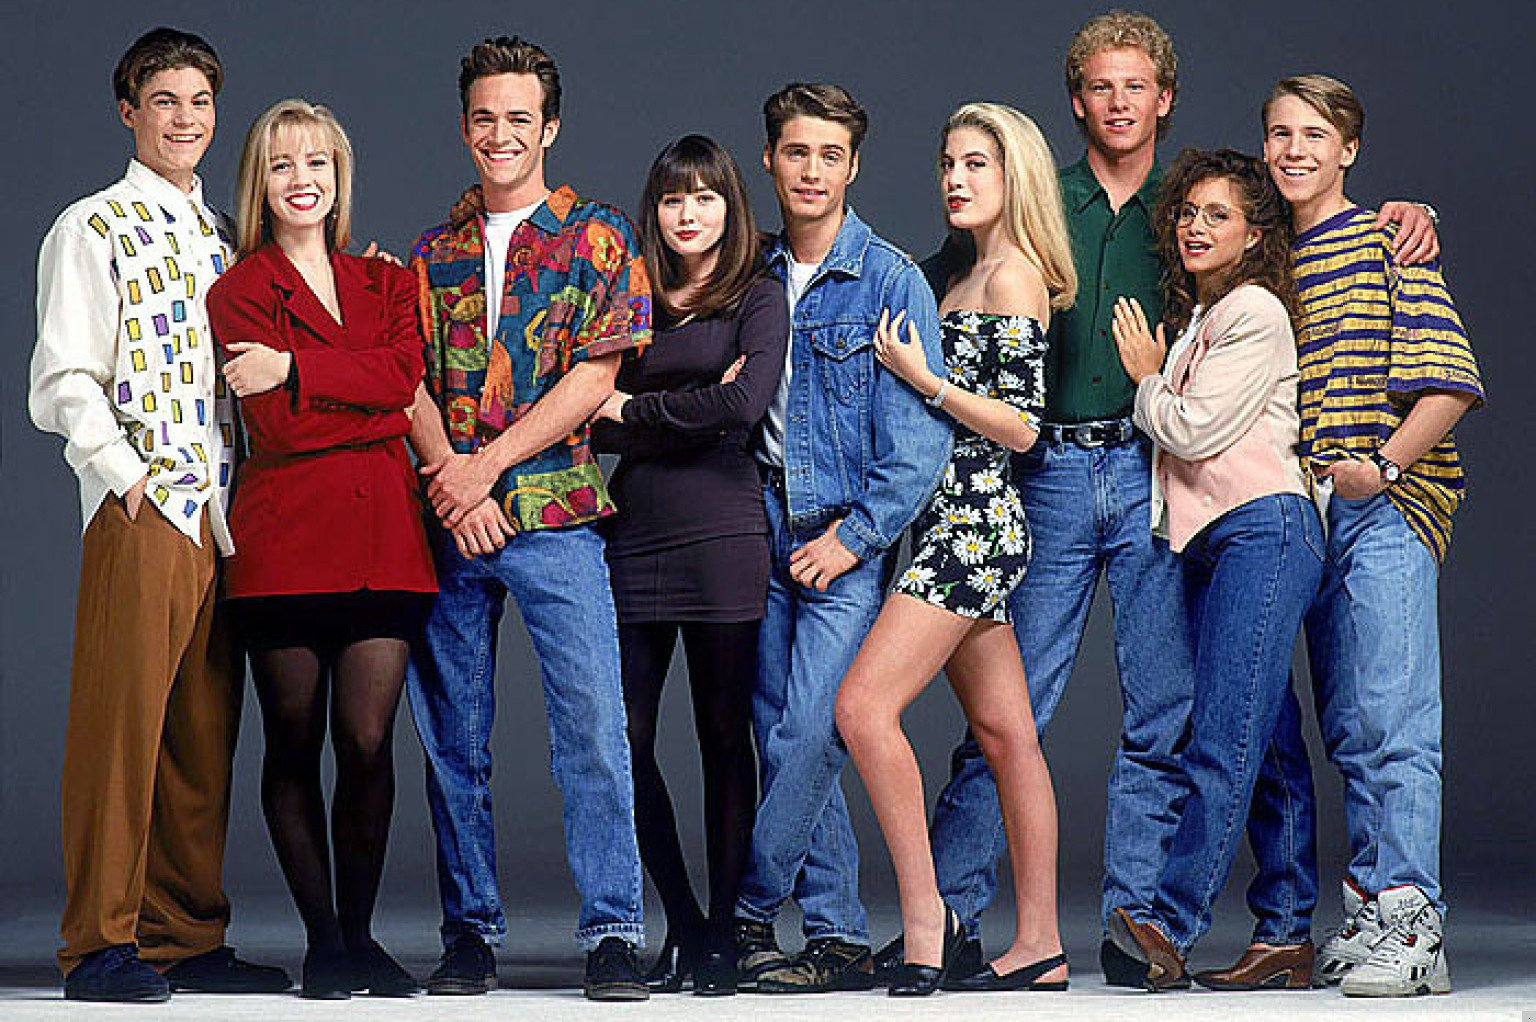 Beverly Hills 90210 cast anni '90